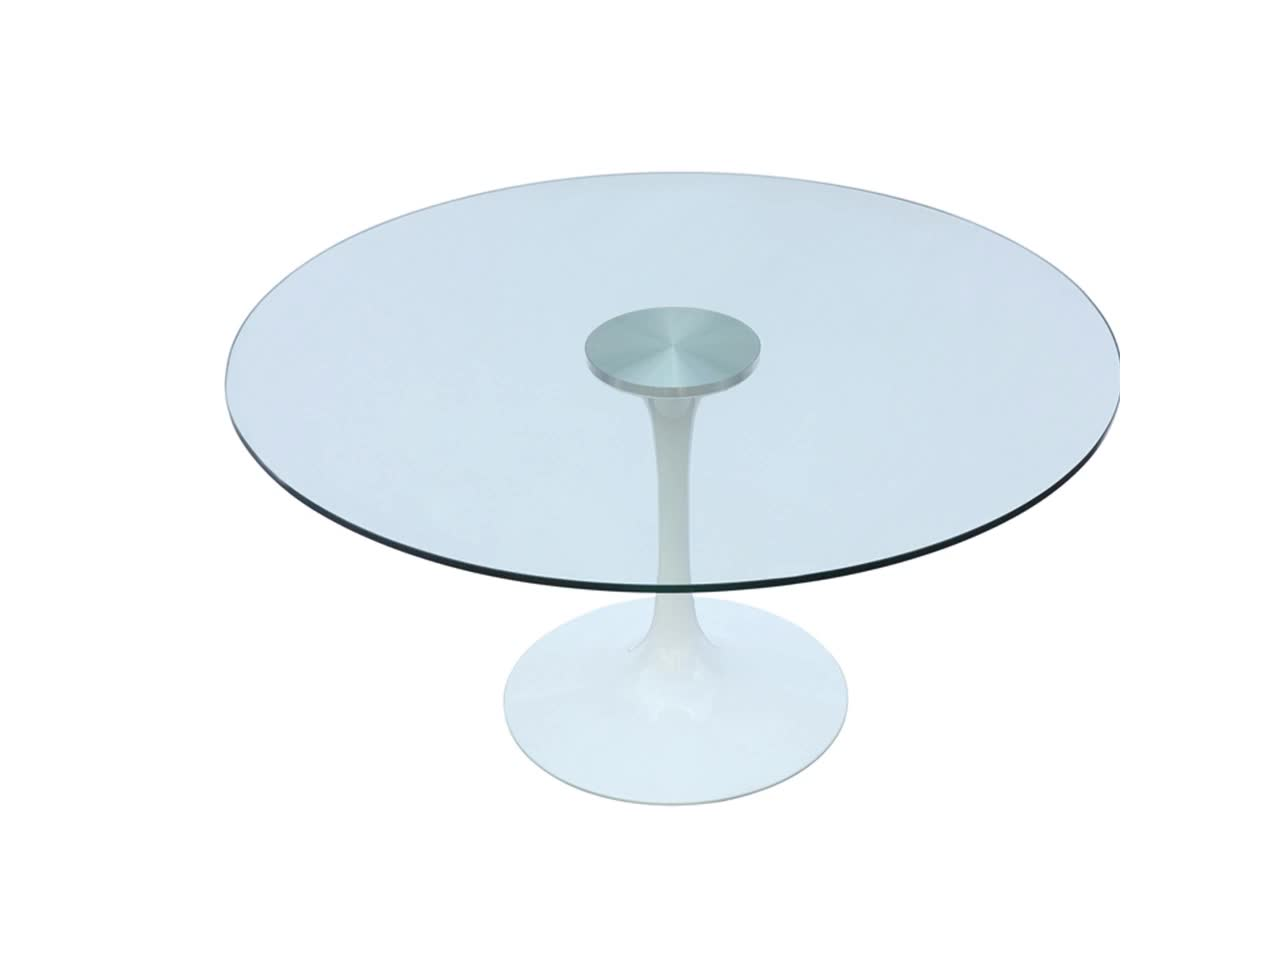 Modern Round Glass Dining Table Modern Glass Top Dining Table With Round Base Buy Glass Top Dining Table Glass Dining Table With Round Base Modern Round Glass Table Product On